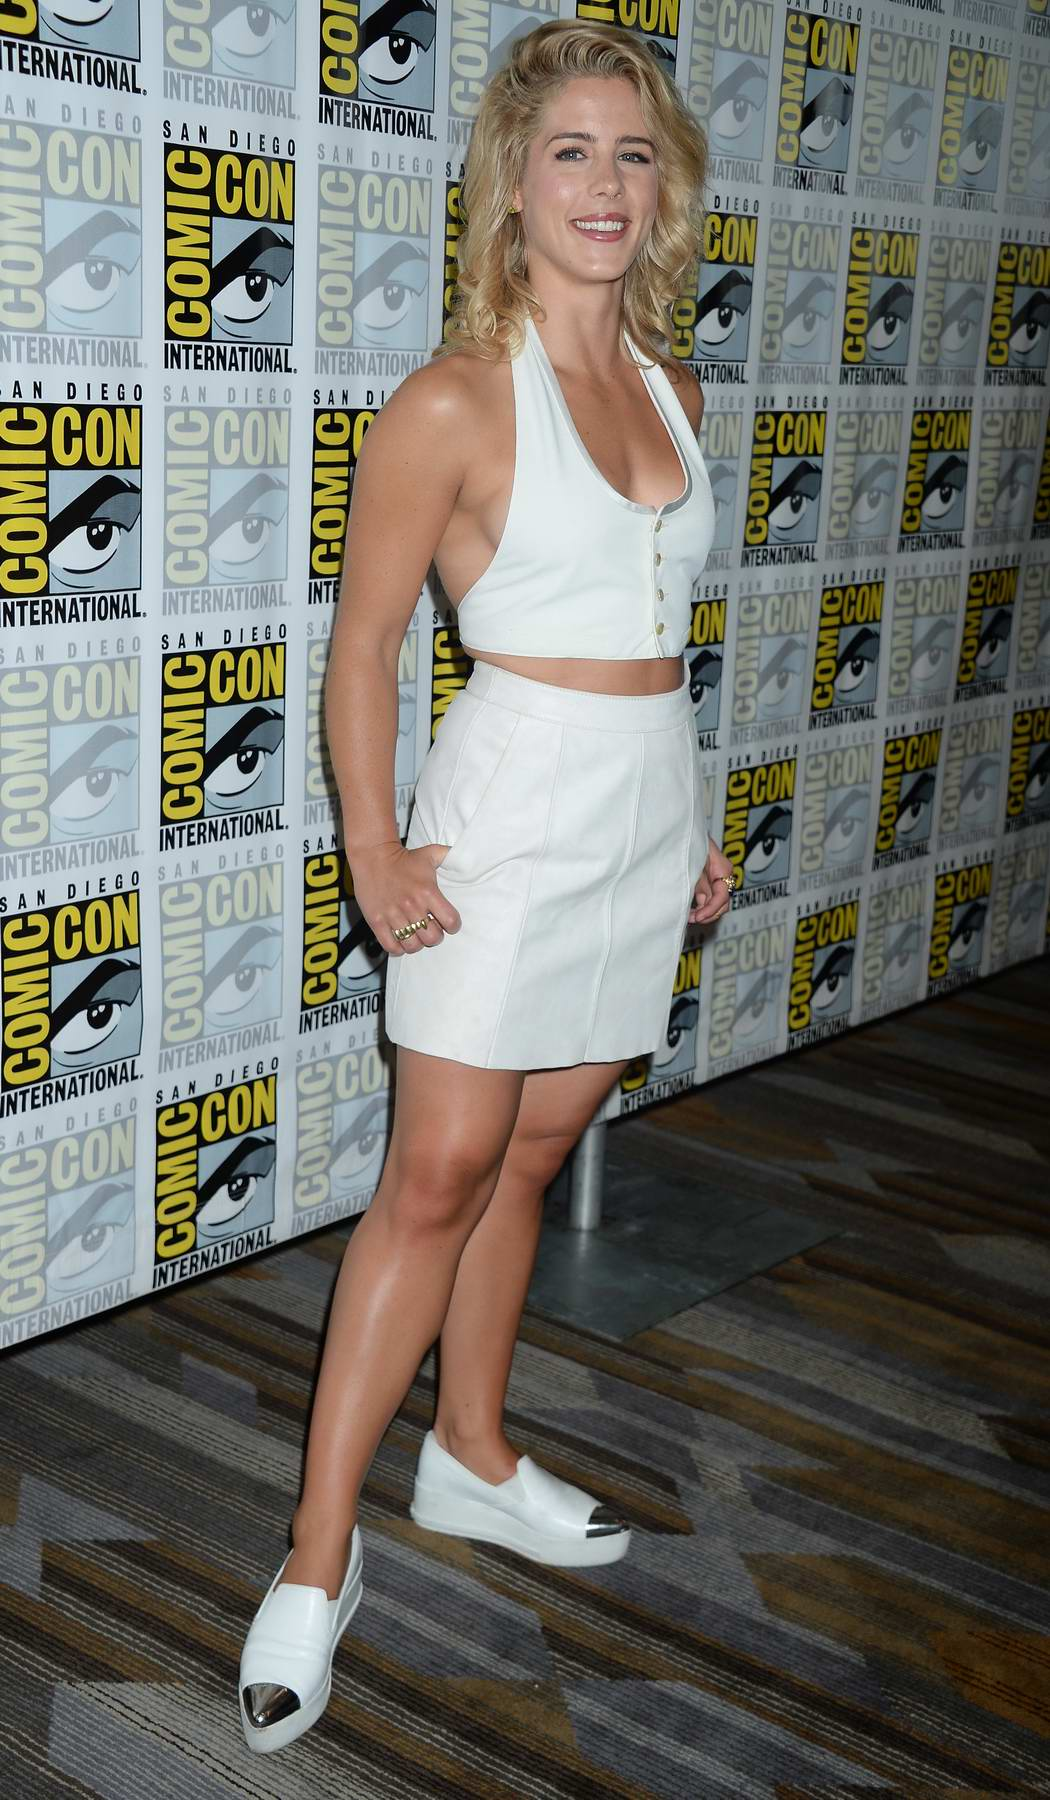 Bett Comic Emily Bett Rickards At Arrow Press Line During Comic Con